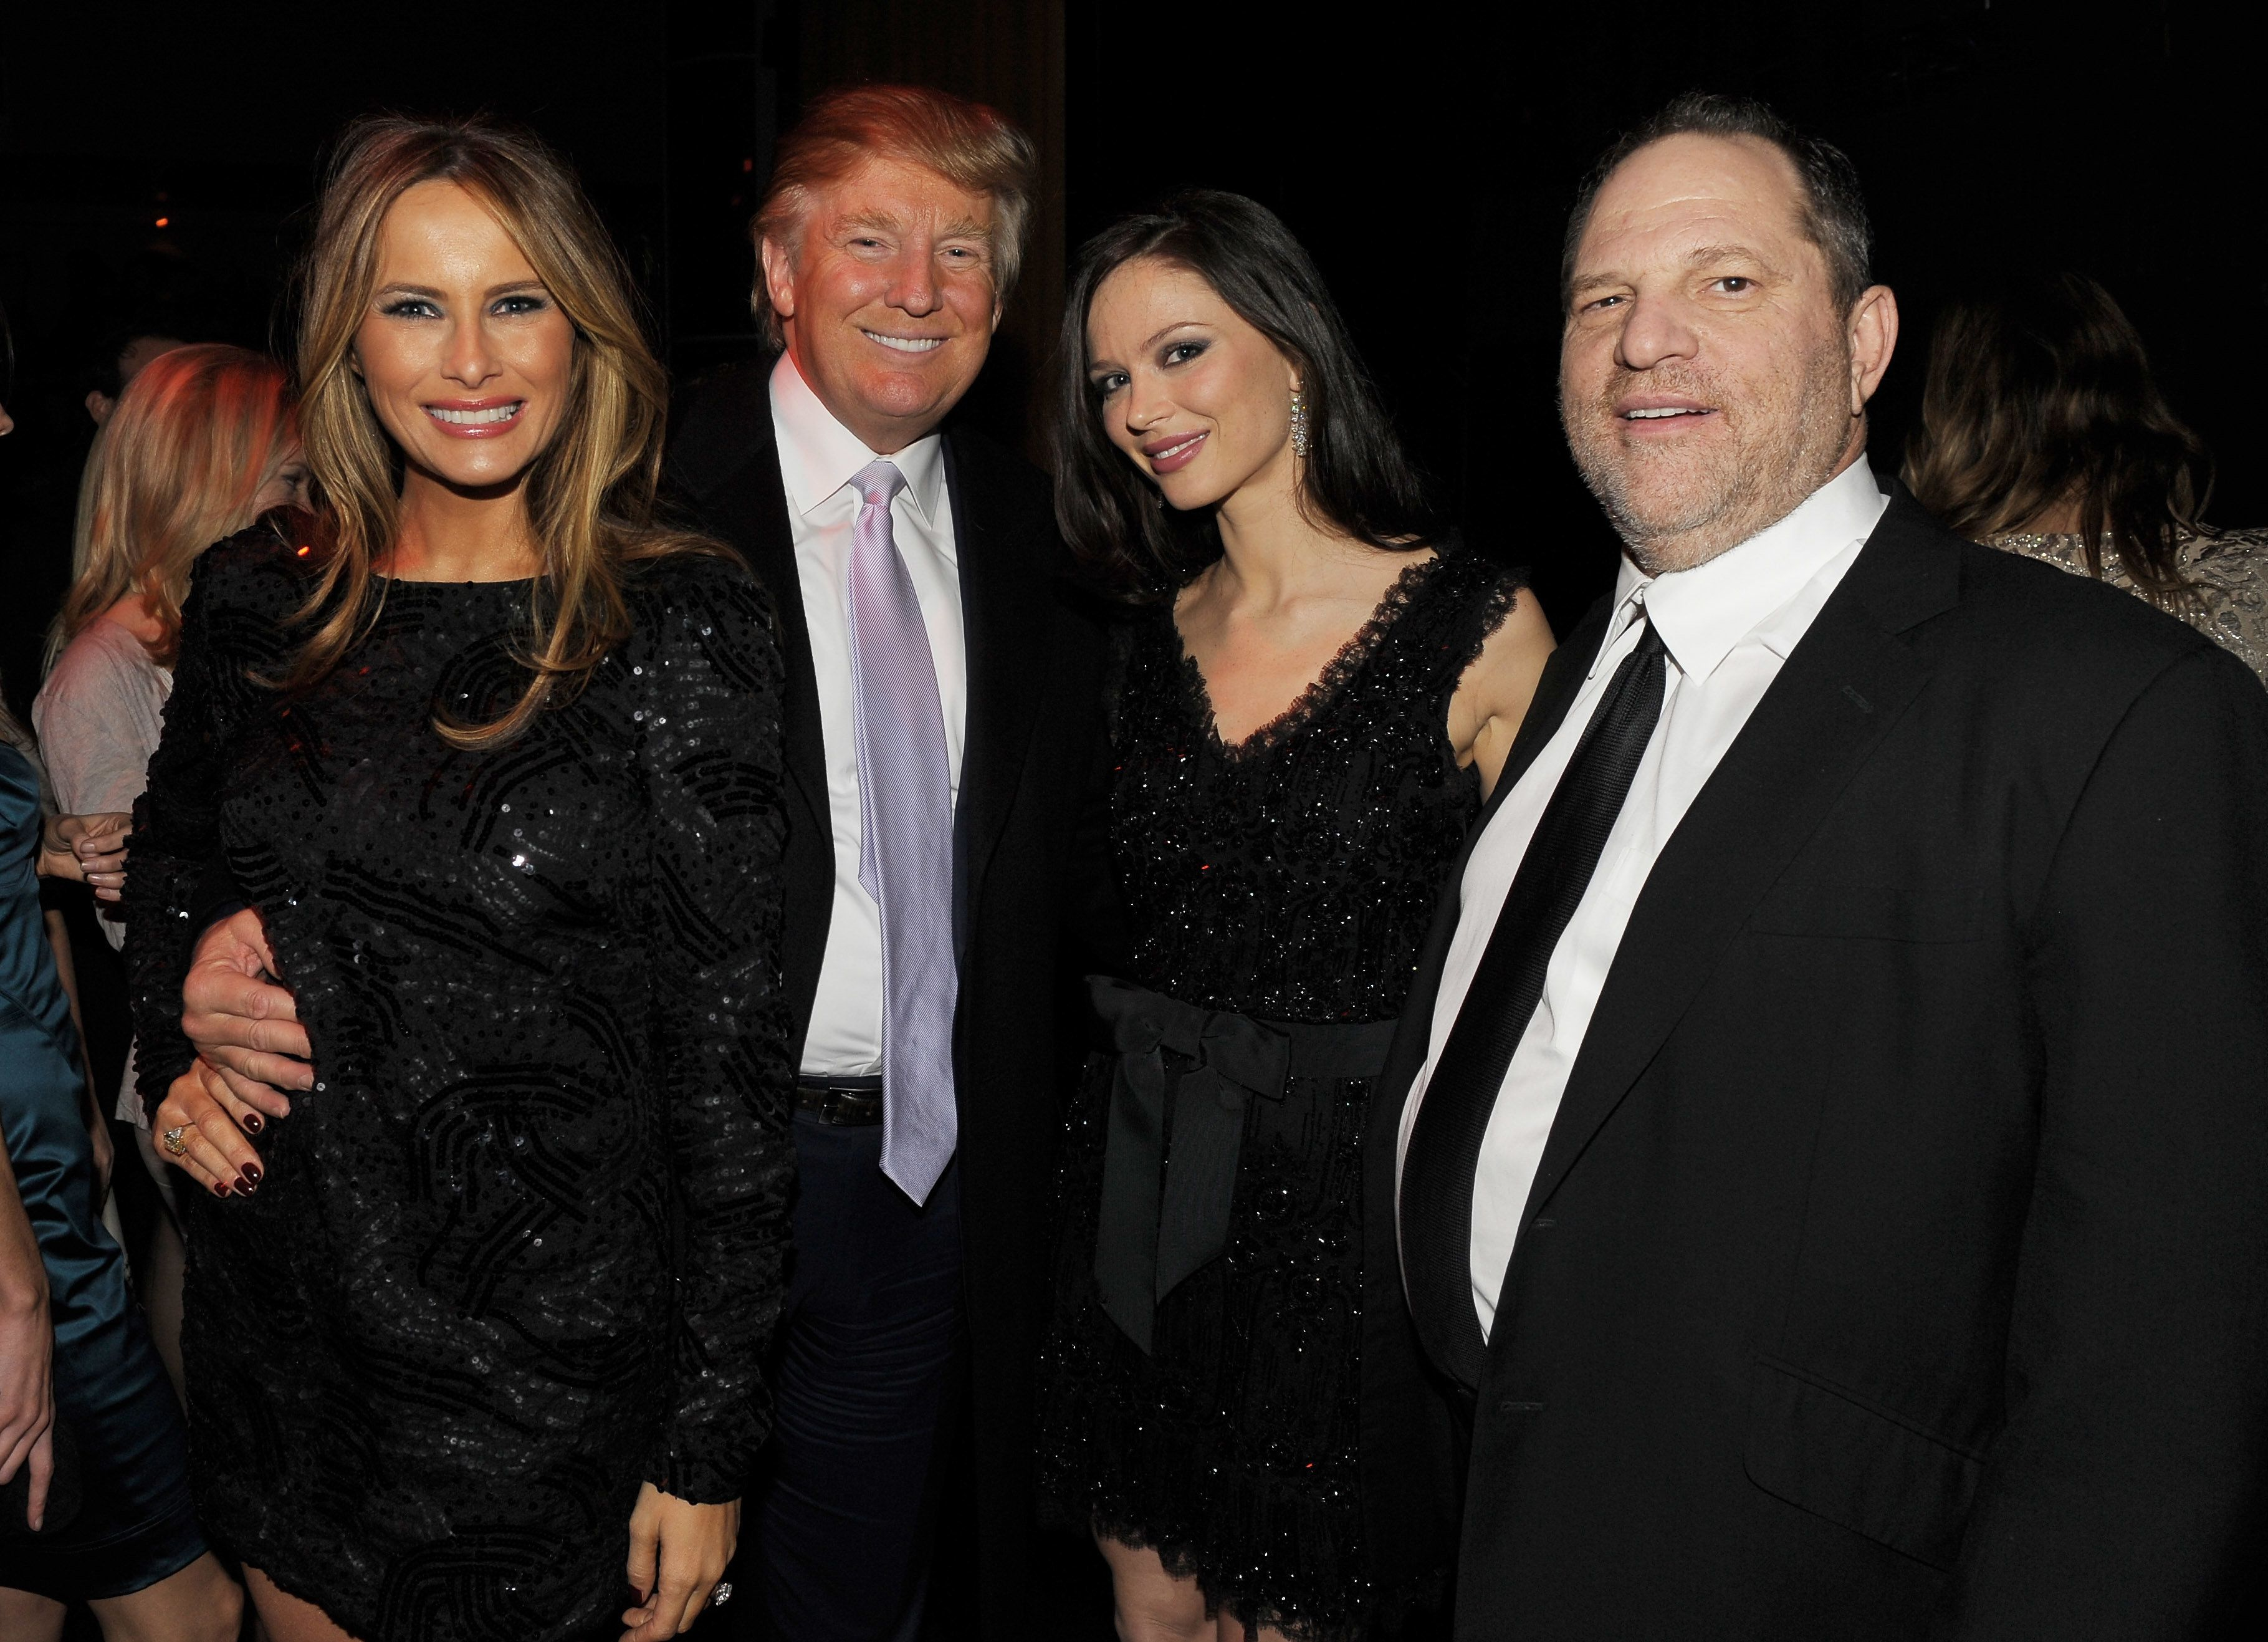 Harvey Weinstein's Audio Is The Horrifying Sequel To Trump's 'Access Hollywood'